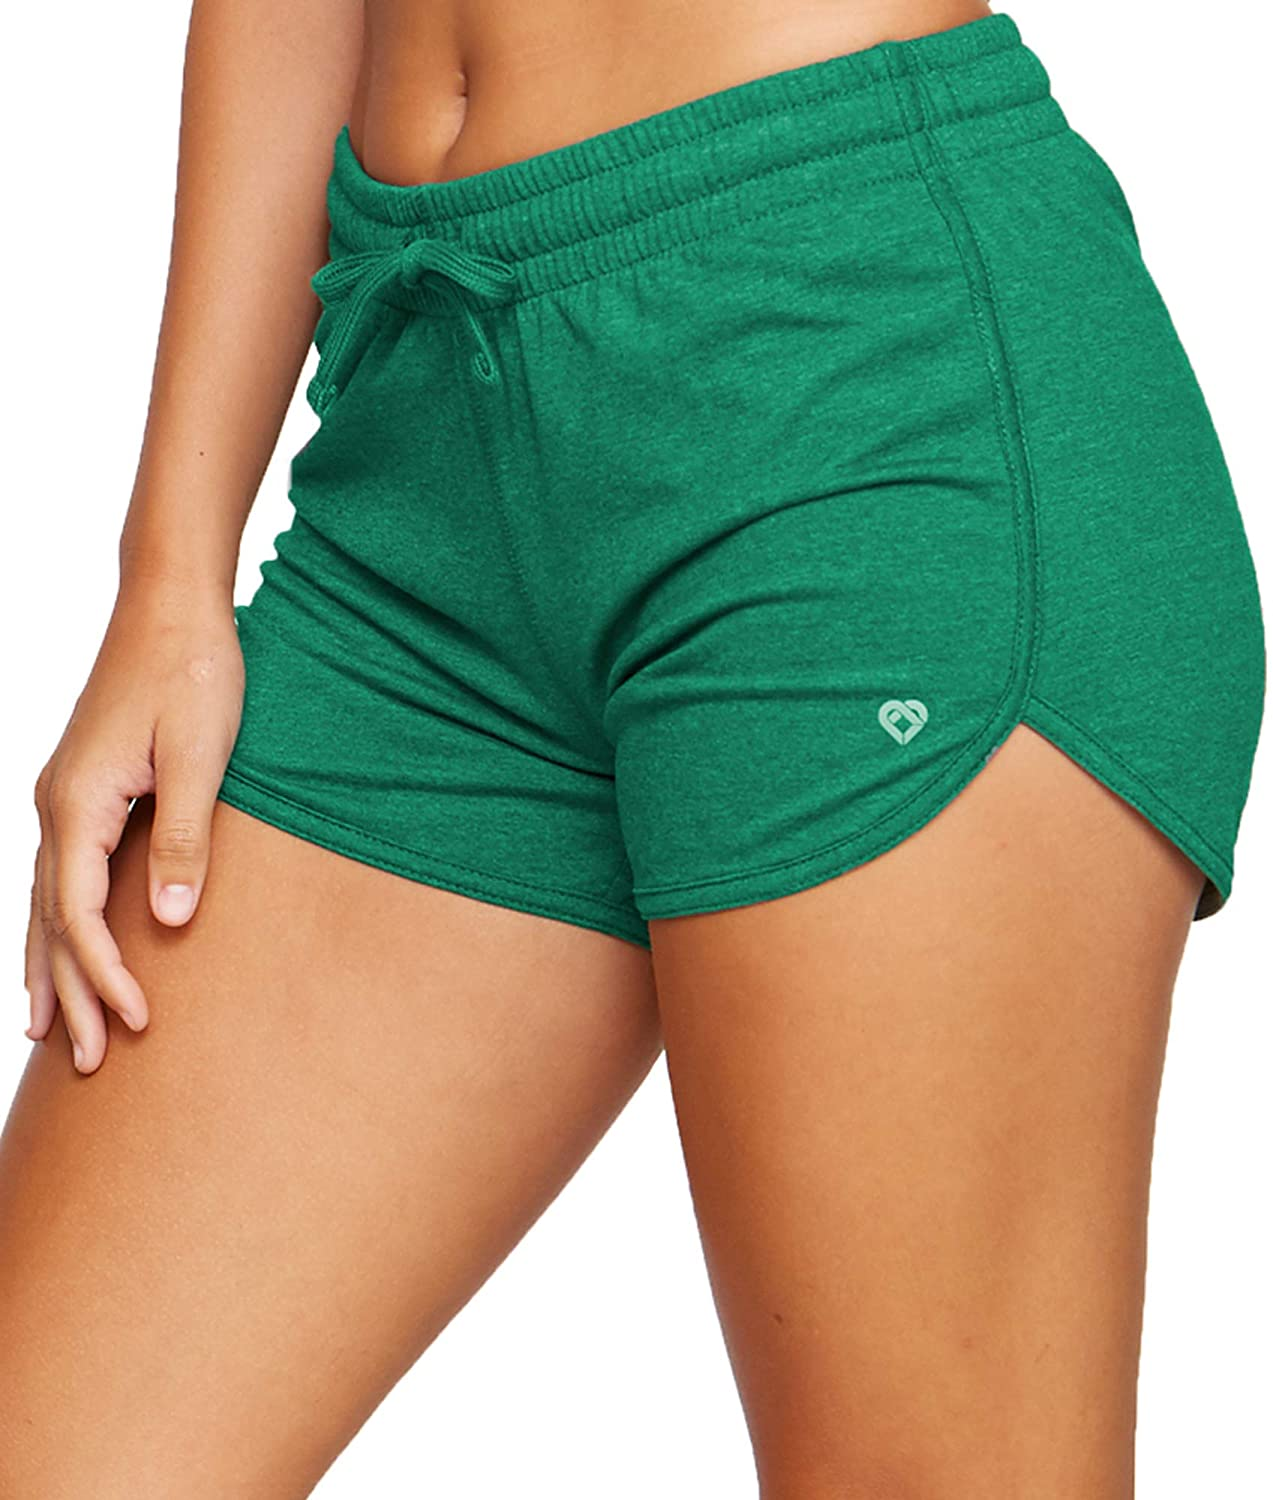 Colosseum Direct sale of manufacturer Active Women's Simone Cotton Sh Blend and Wholesale Yoga Running